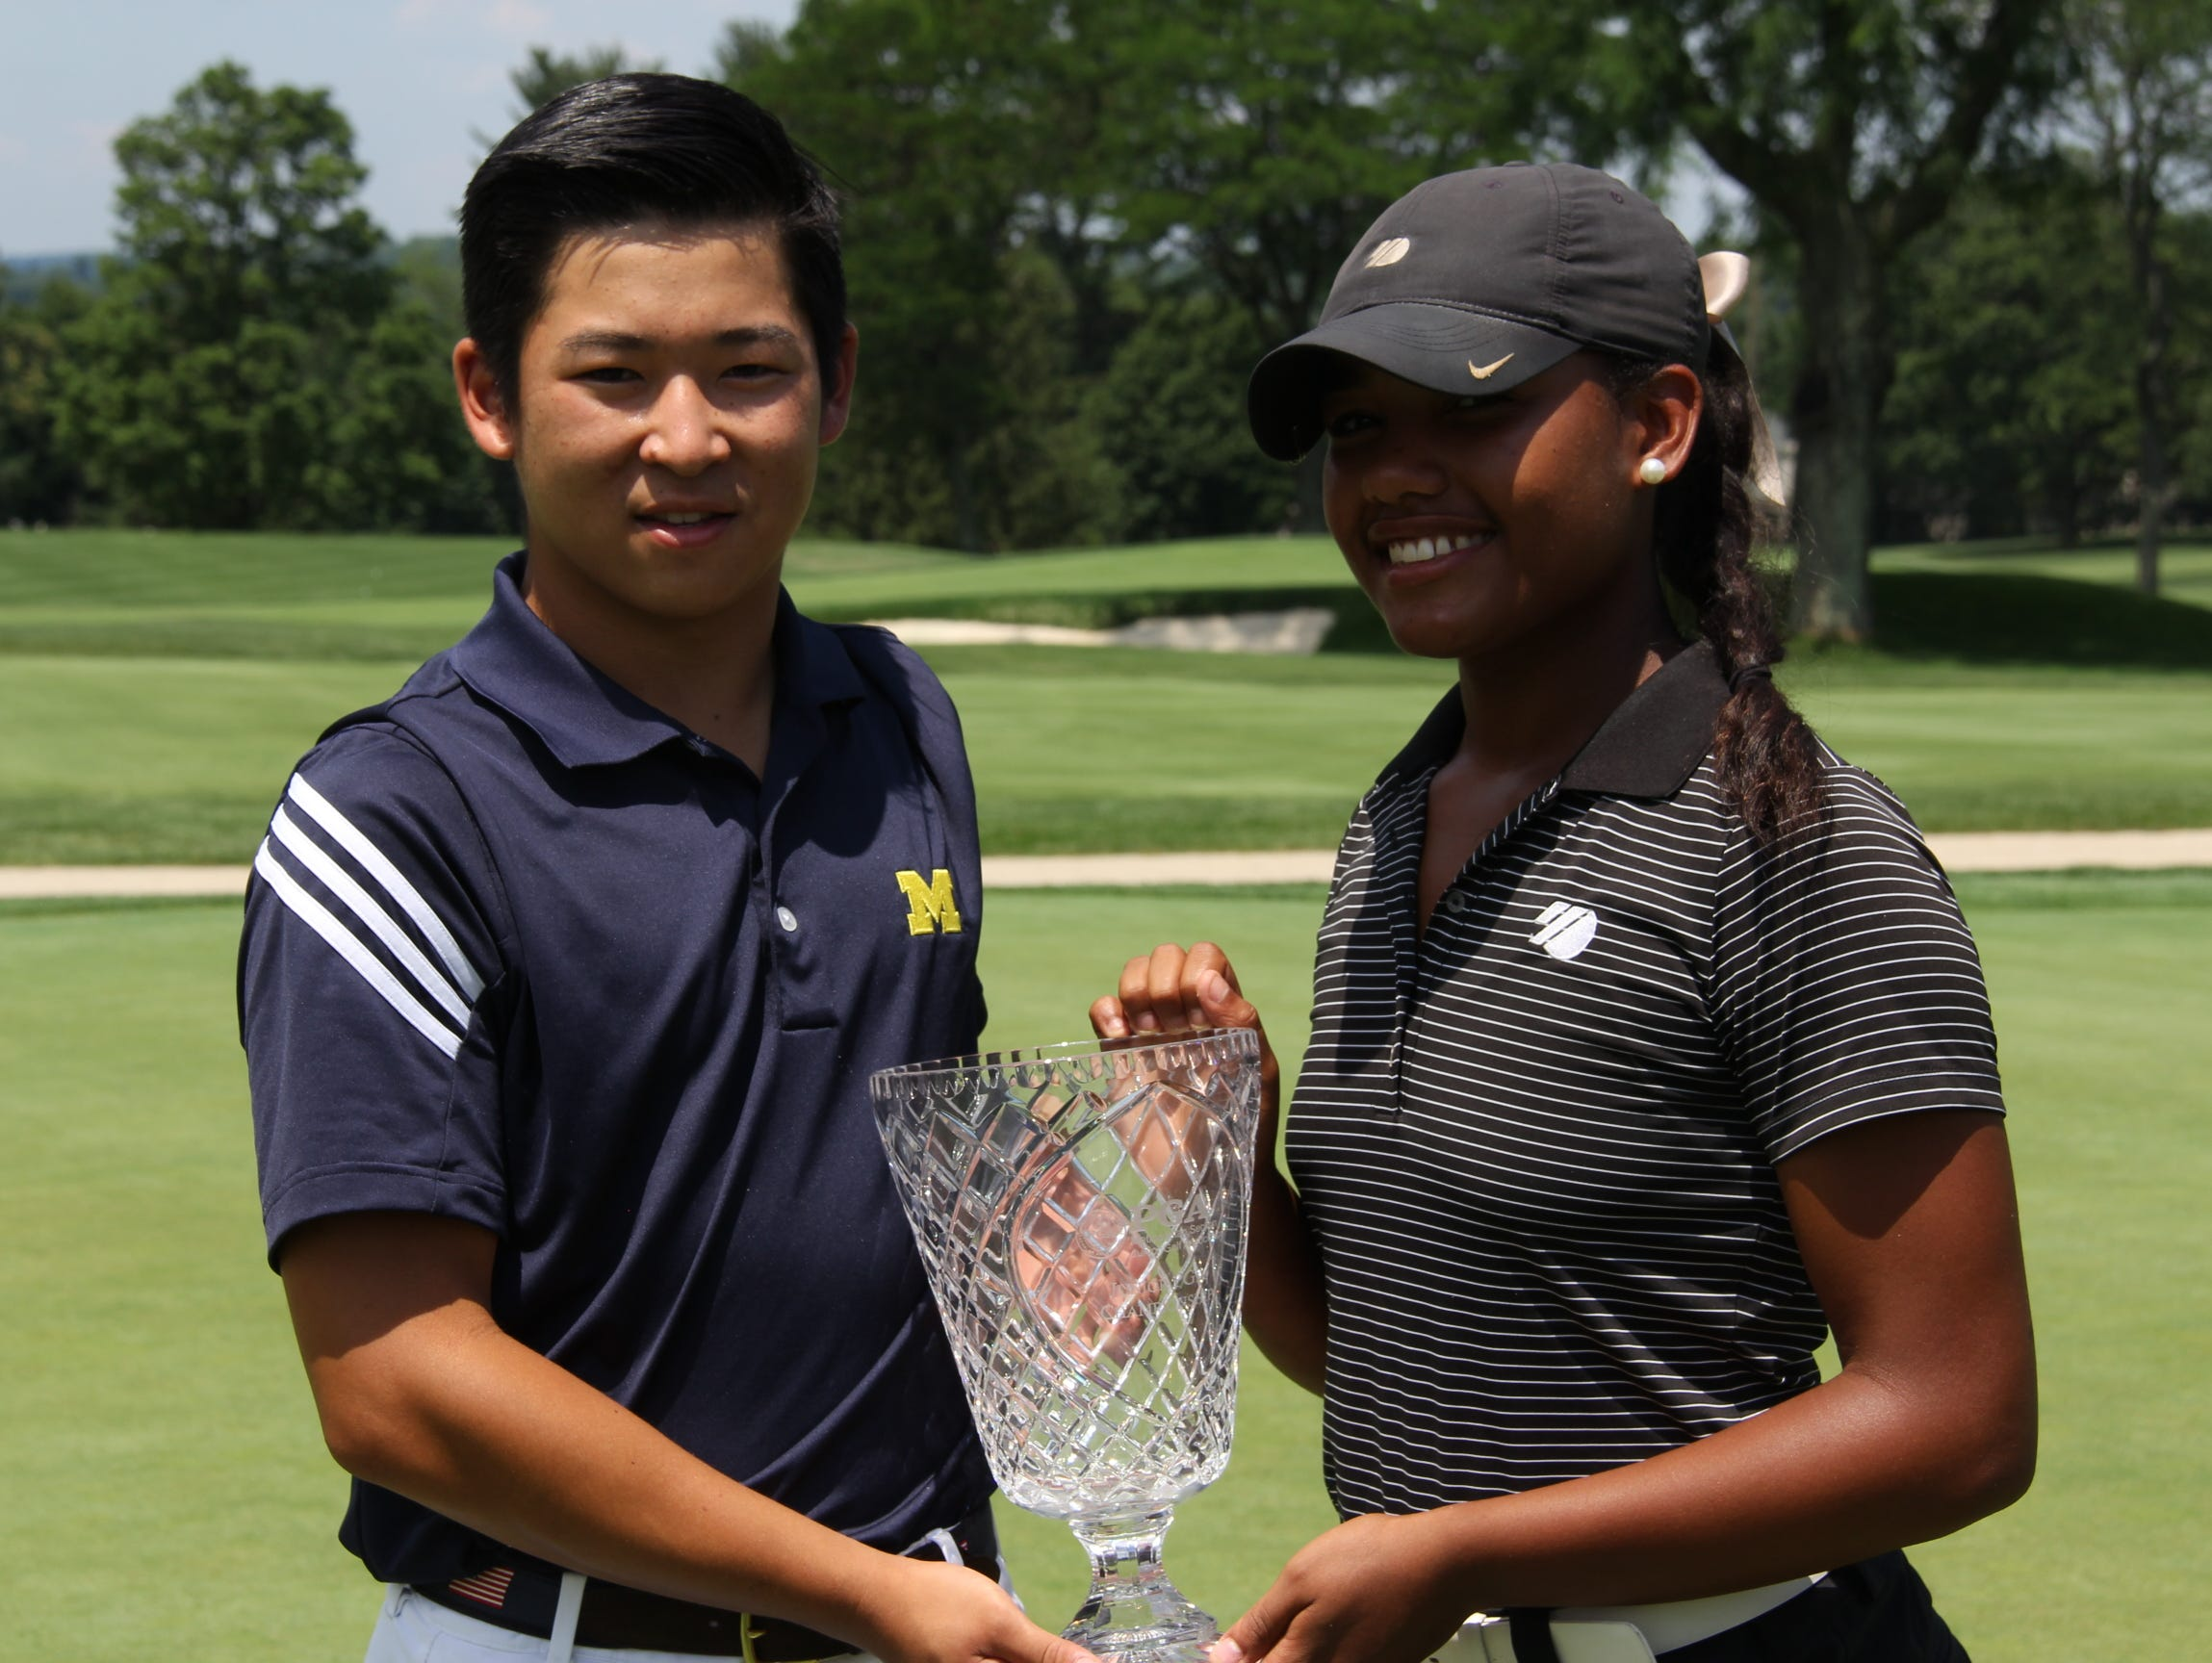 Brent Ito and Kyra Cox won Met Junior PGA titles on Wednesday at Metropolis Country Club.